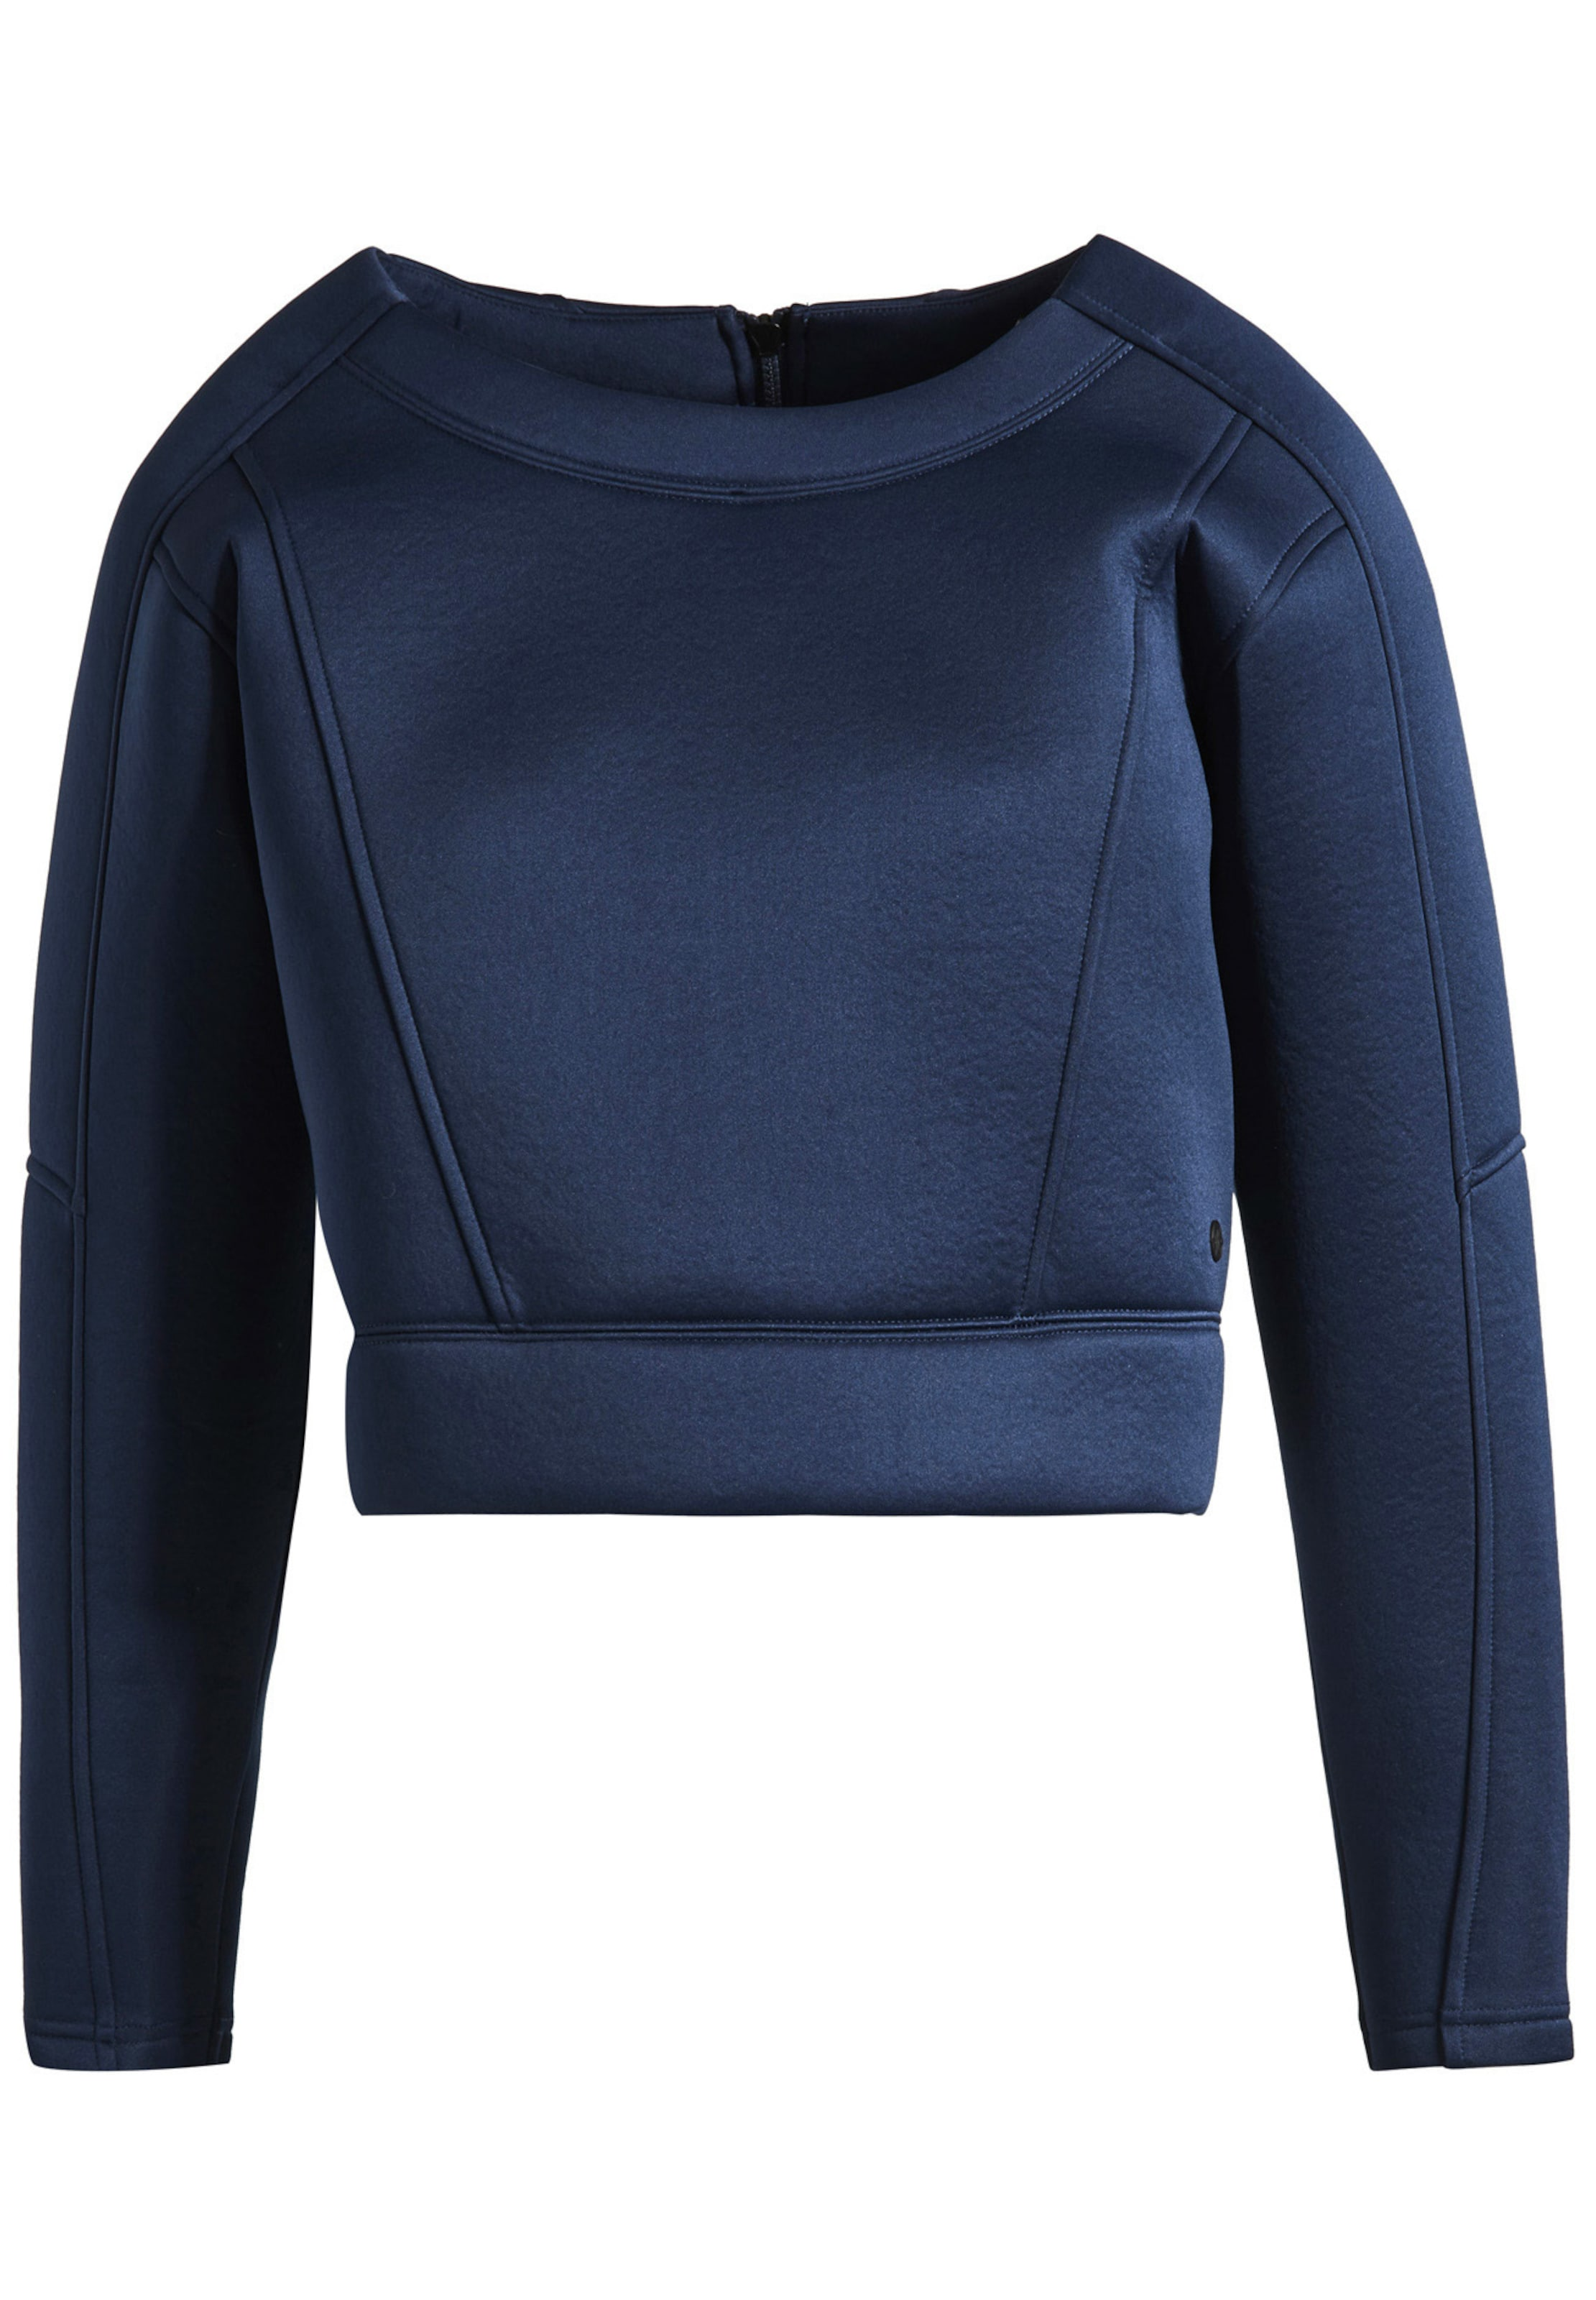 'onion' Khujo Khujo Sweatshirt 'onion' Blau In In Sweatshirt 08nPwOXk